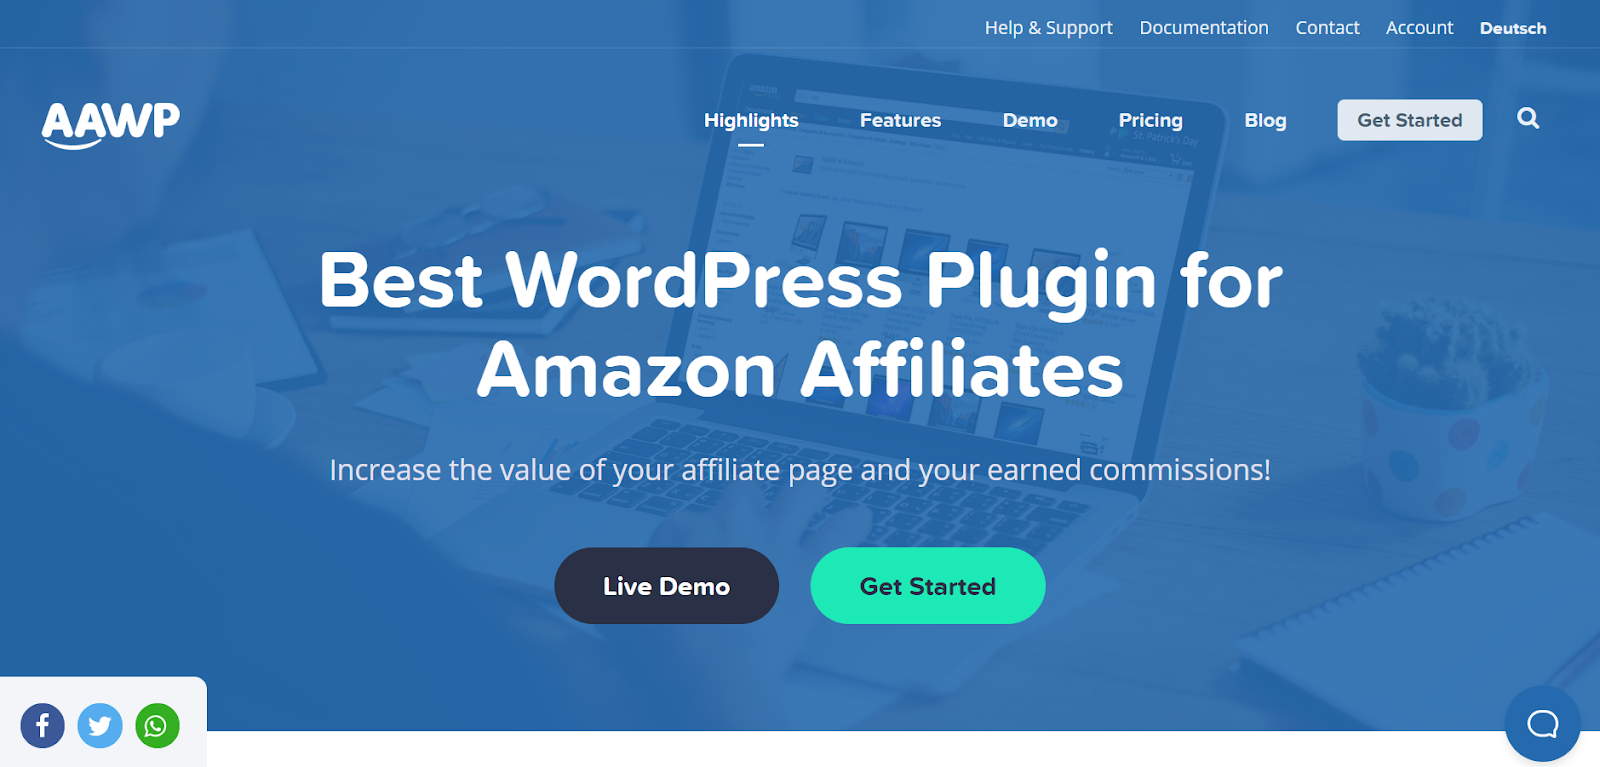 affiliate marketing tools for Amazon